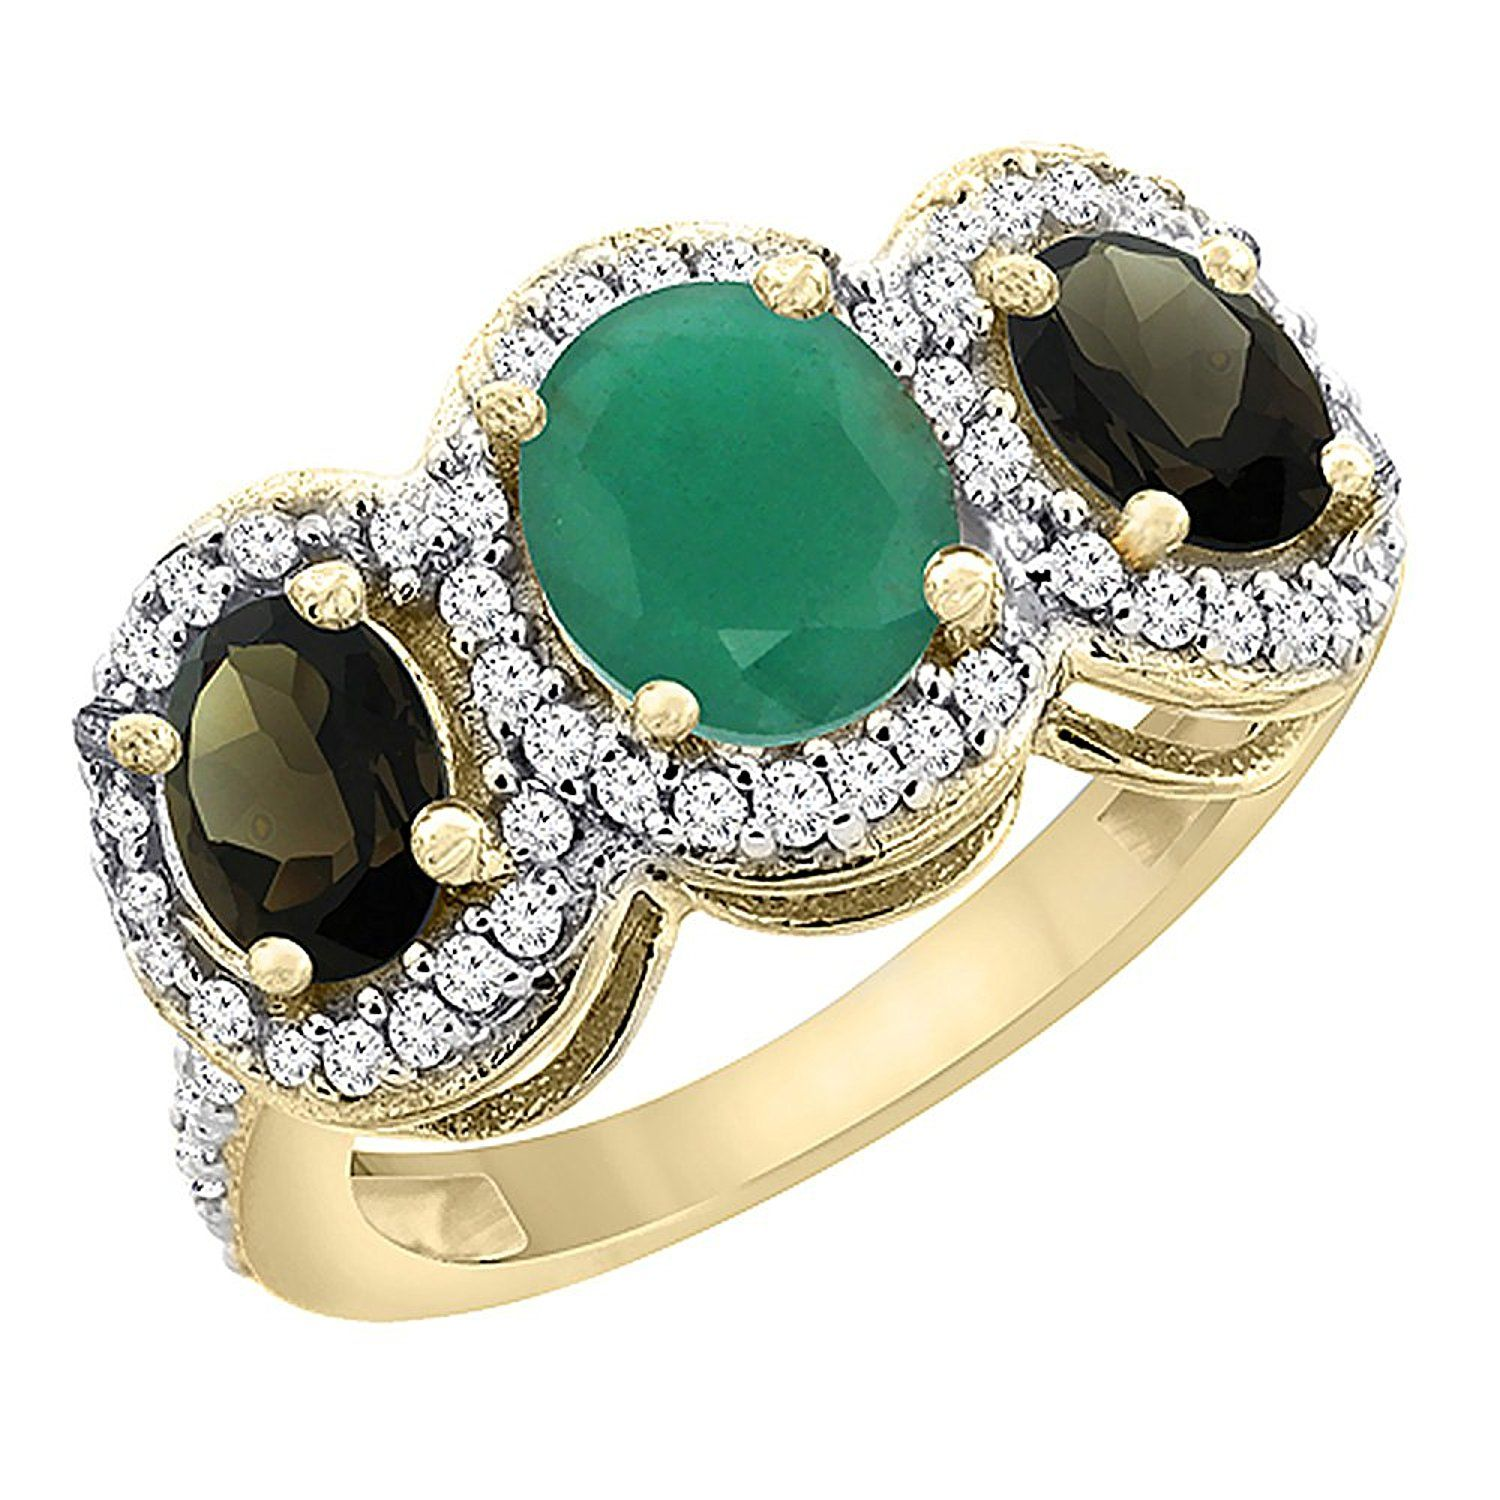 10K Yellow Gold Natural Cabochon Emerald